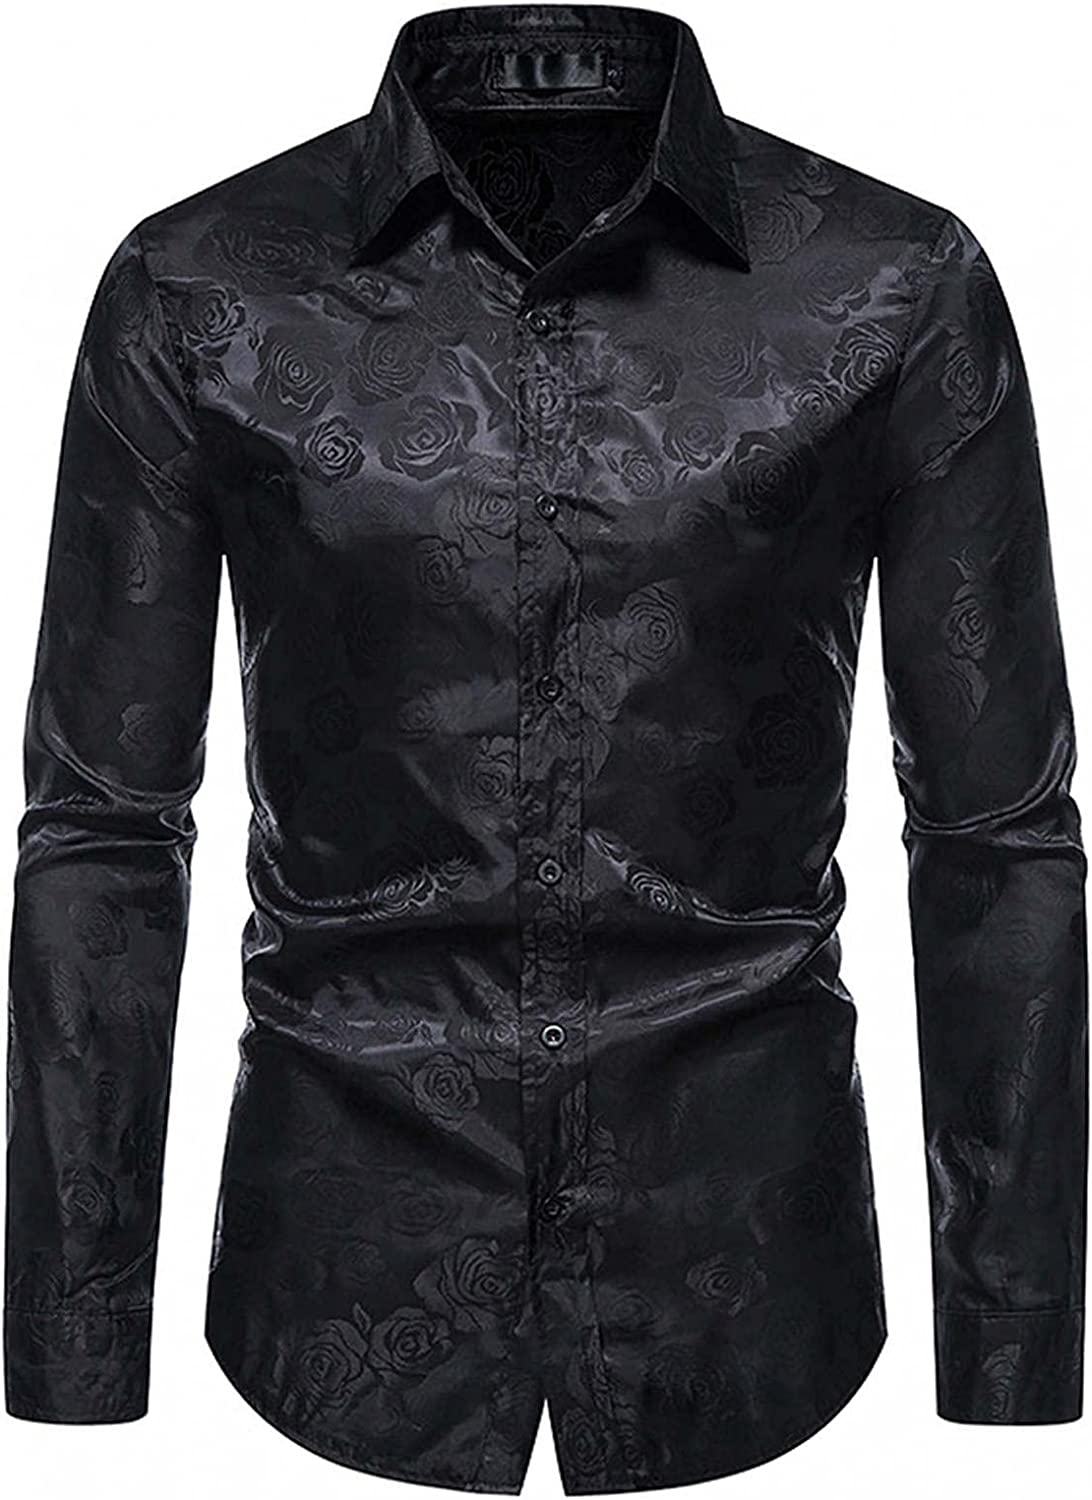 VEKDONE Mens Long Sleeve Button Down Shirts Slim Fit Floral Rose Printed Design Prom Wedding Party Business Dress Shirt